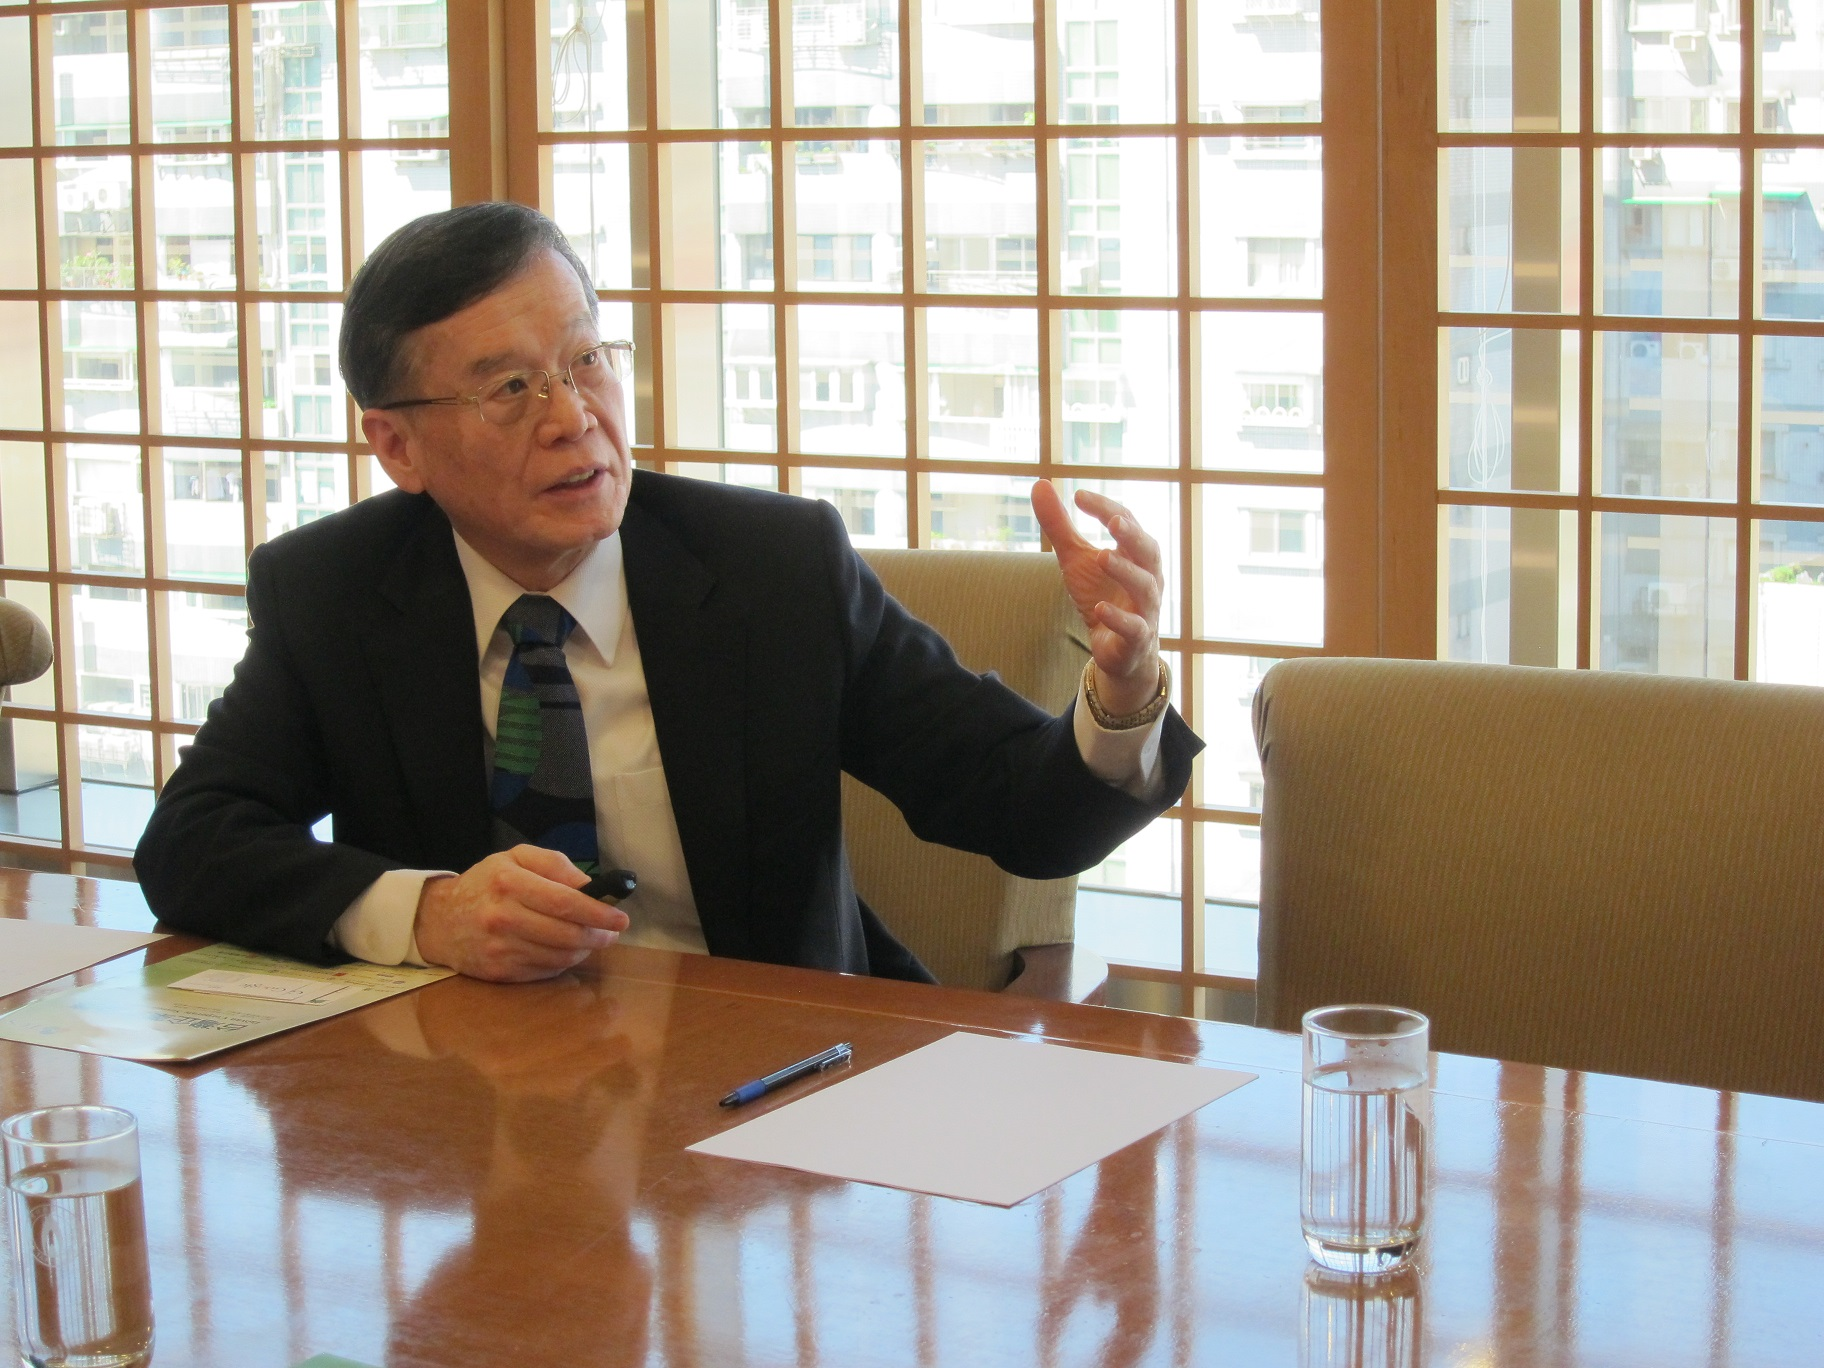 Former Foreign Minister and current chairman of the Taiwan Institute for Sustainable Energy Eugene Chien (簡又新) (Image from Tang Price Organization)